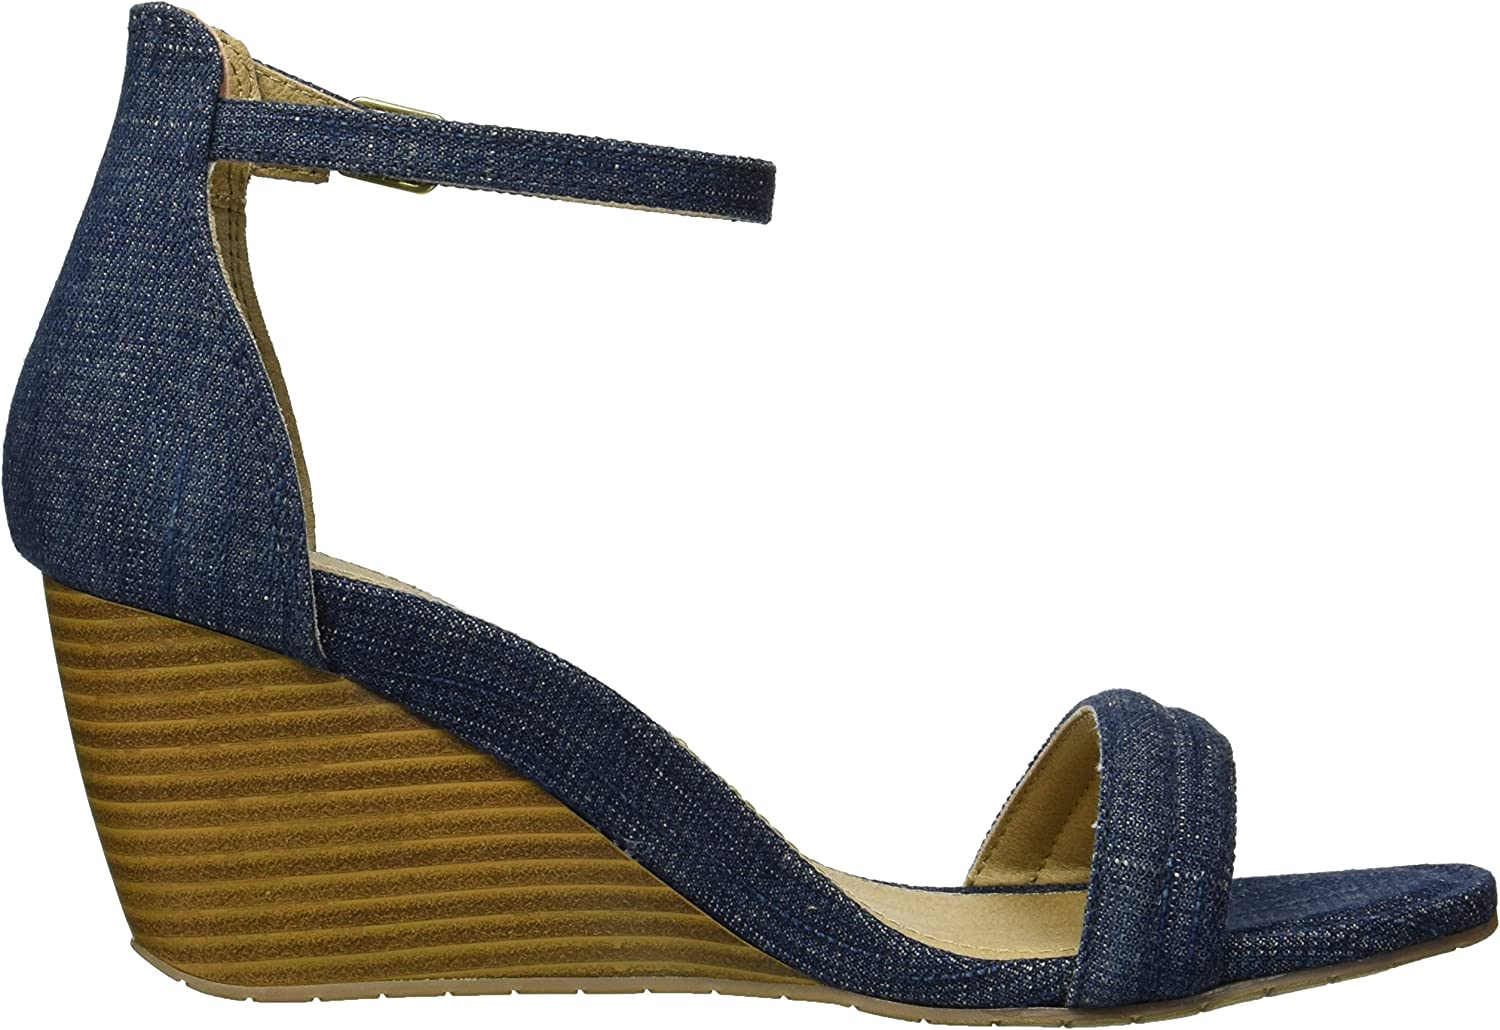 11 M US Denim Kenneth Cole REACTION Womens 7 Cake Icing Wedge Sandal with Ankle Strap